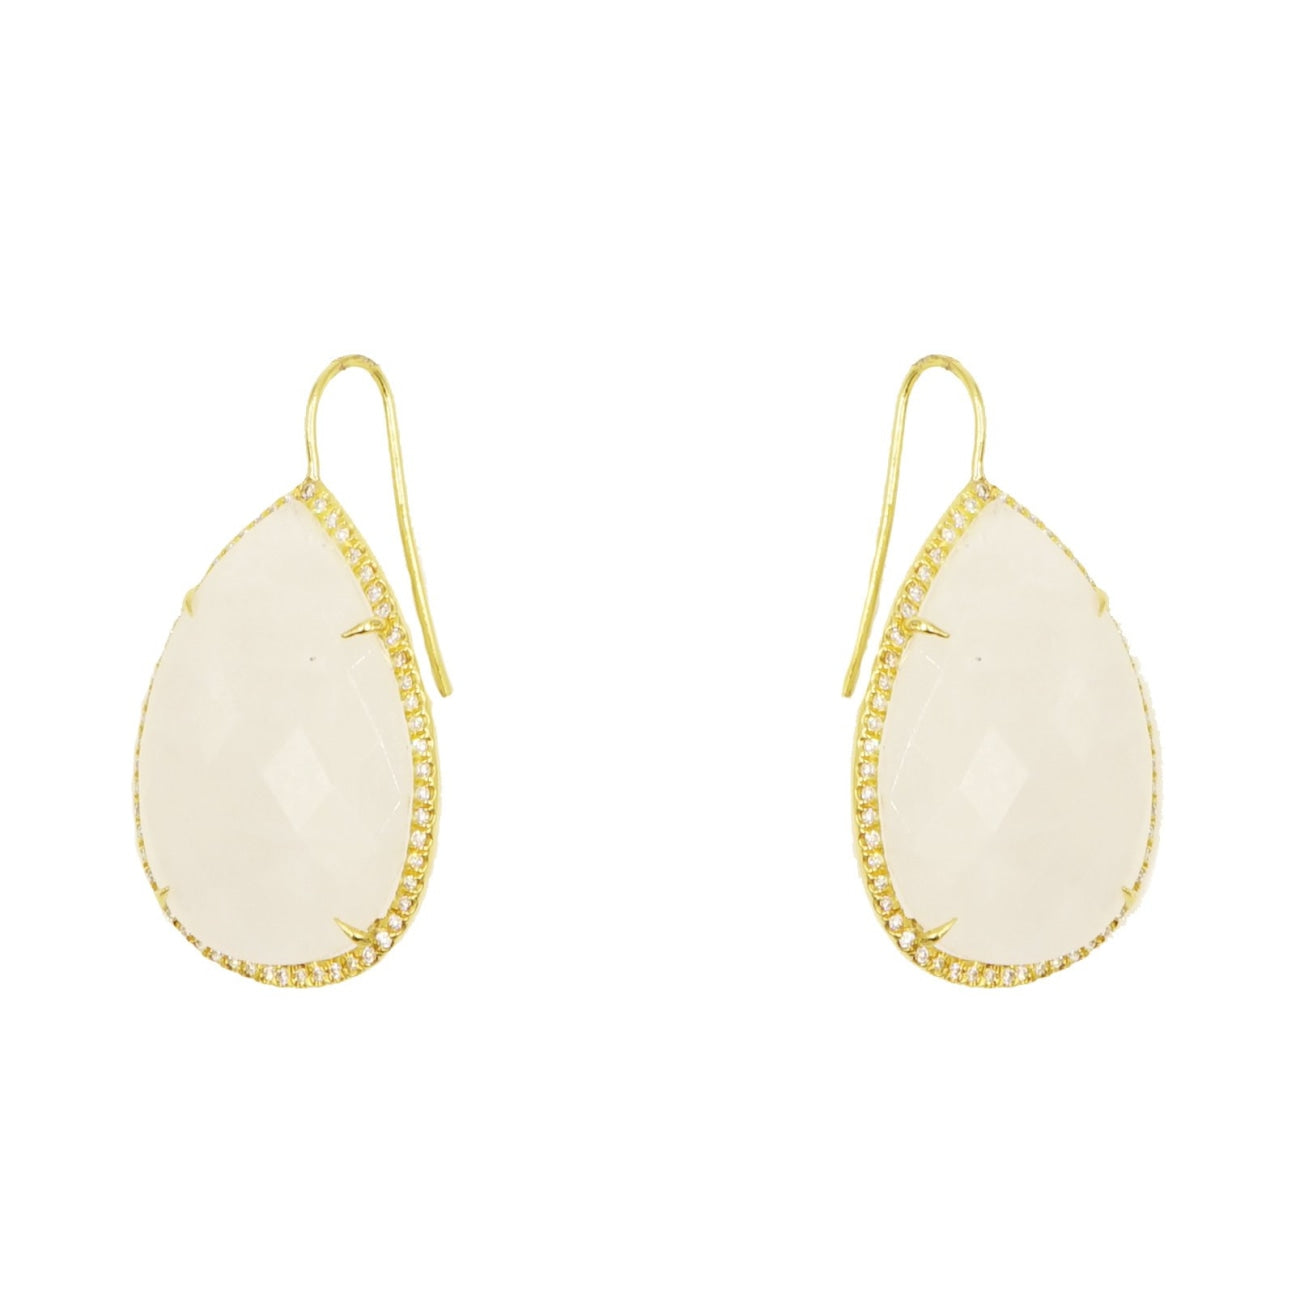 Lauren K Jewelry - Pear shaped Faceted Moonstone Drop Earrings | Manfredi Jewels